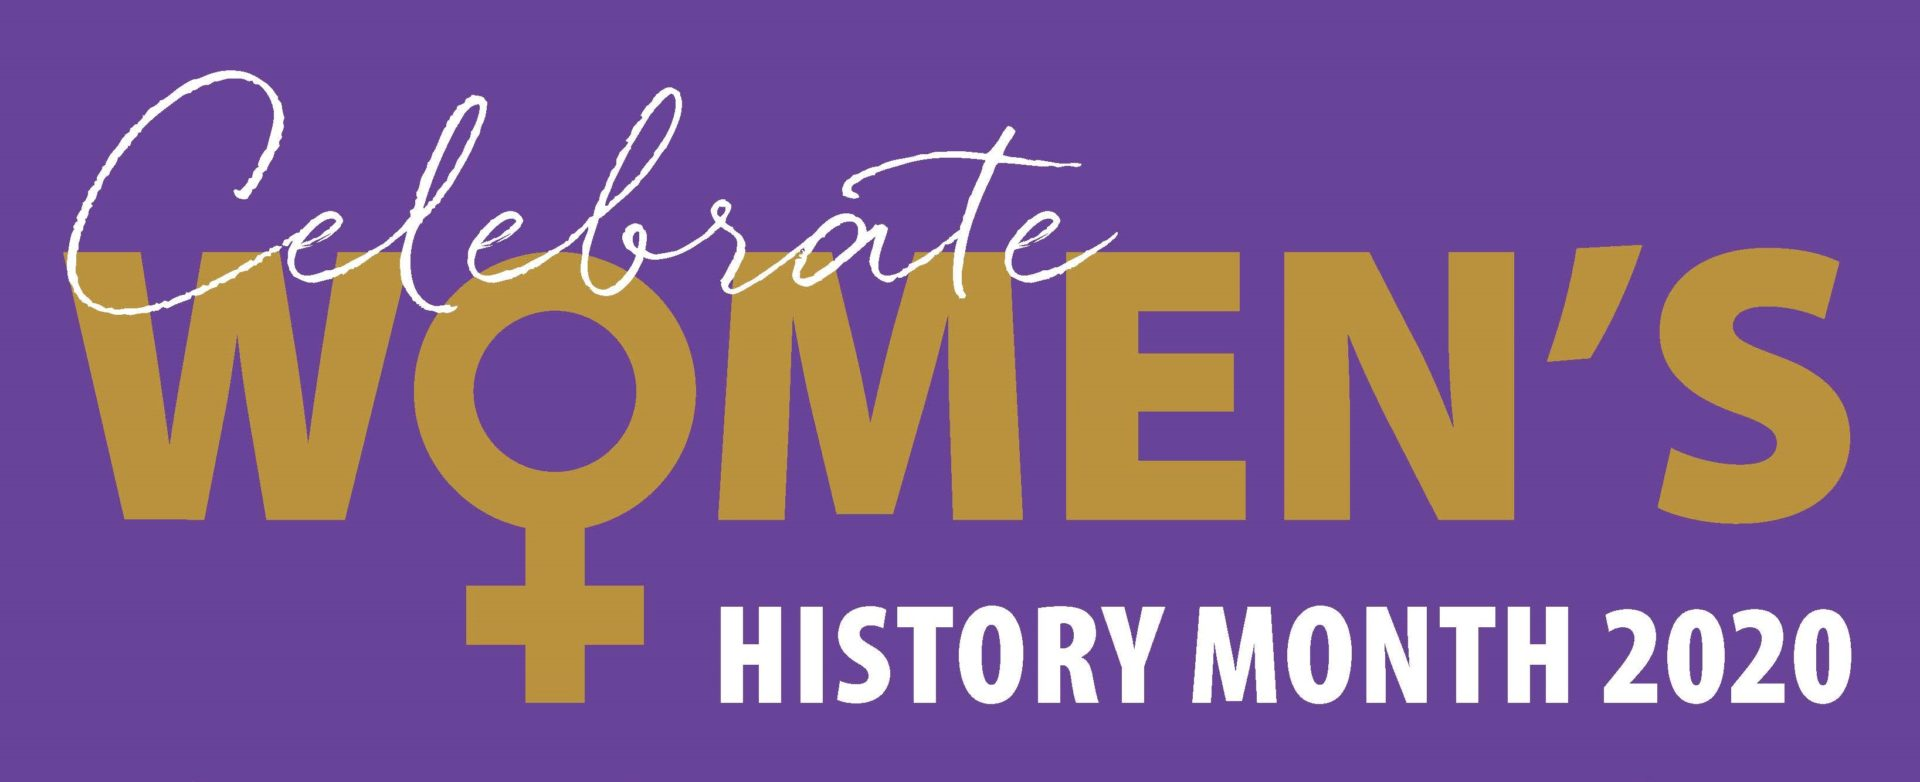 text - Celebrate Women's History Month 2020